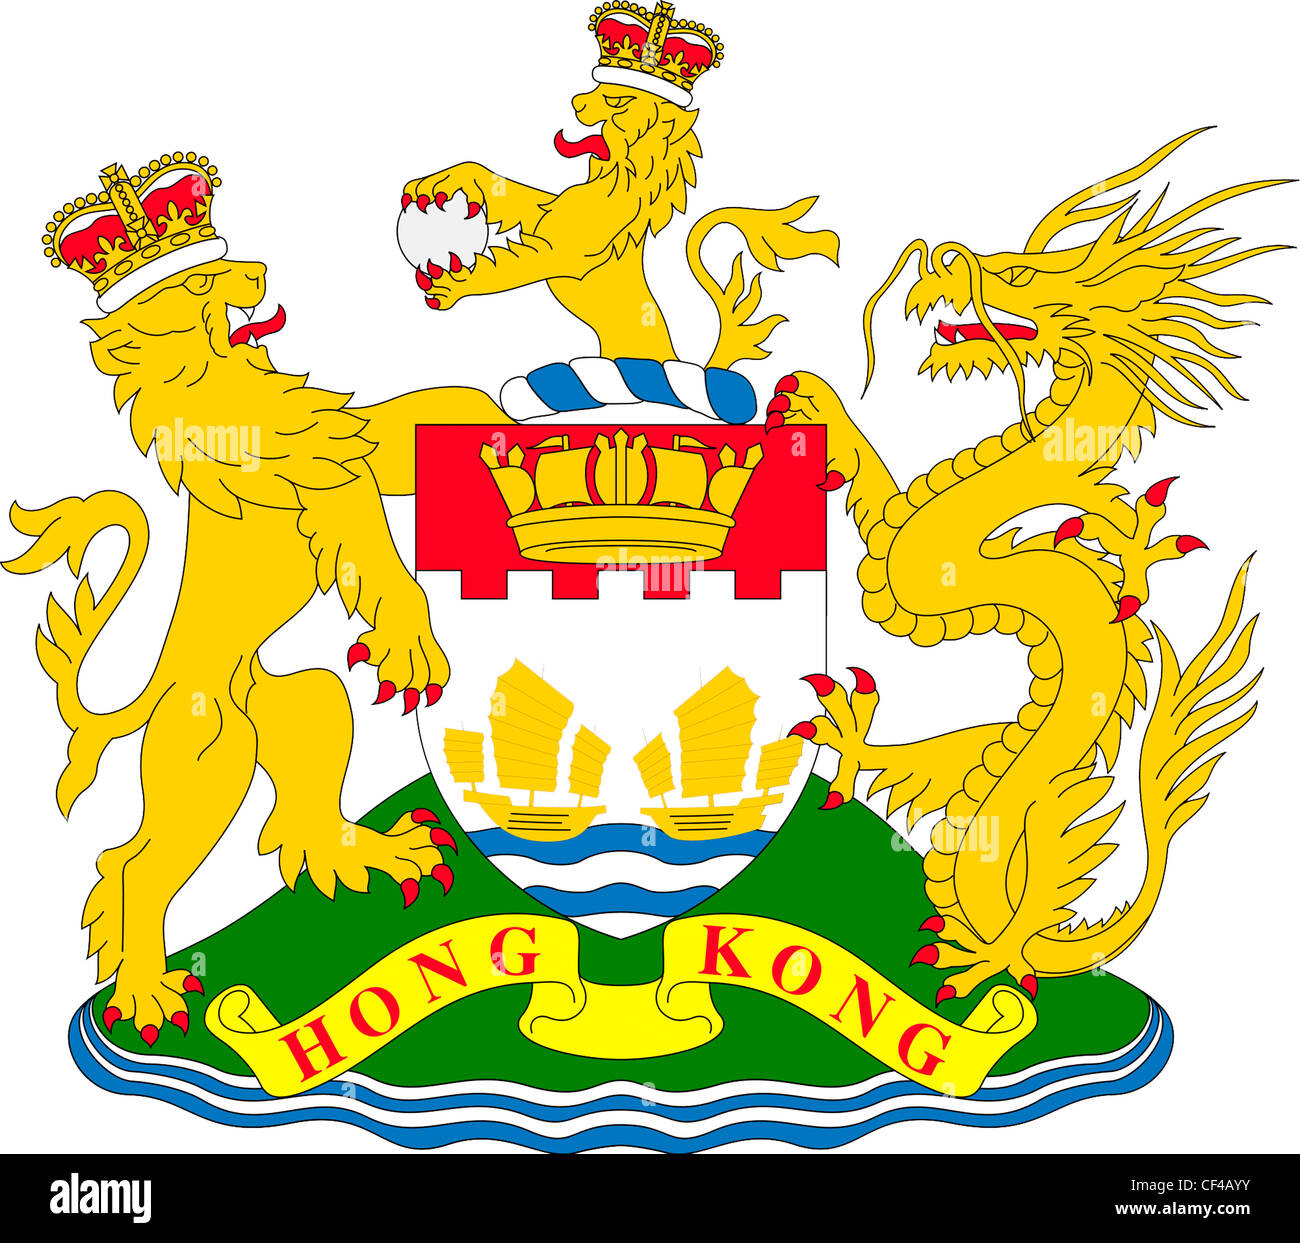 Coat of arms of British crown colony Hong Kong - 1959 to 1997. - Stock Image